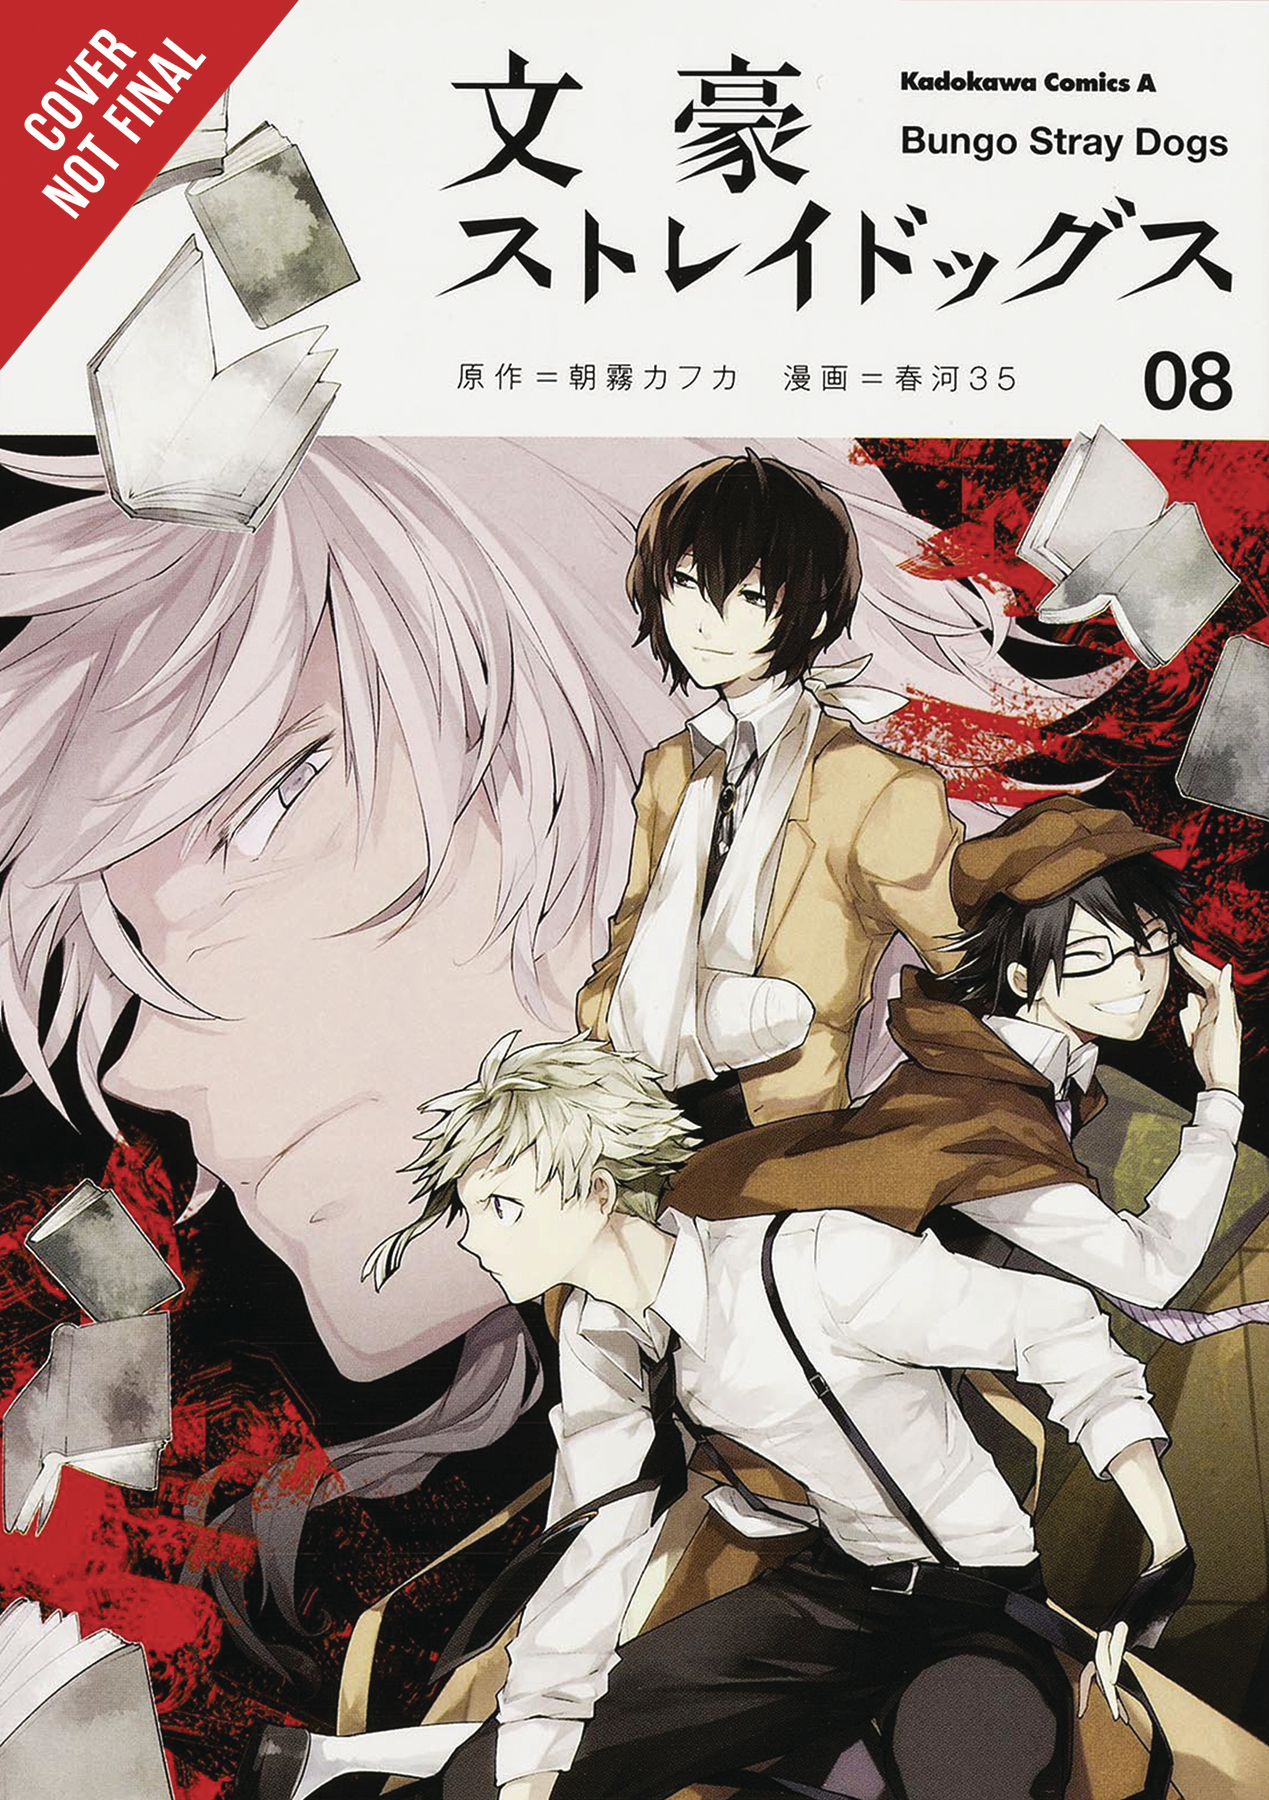 BUNGO STRAY DOGS GN VOL 08